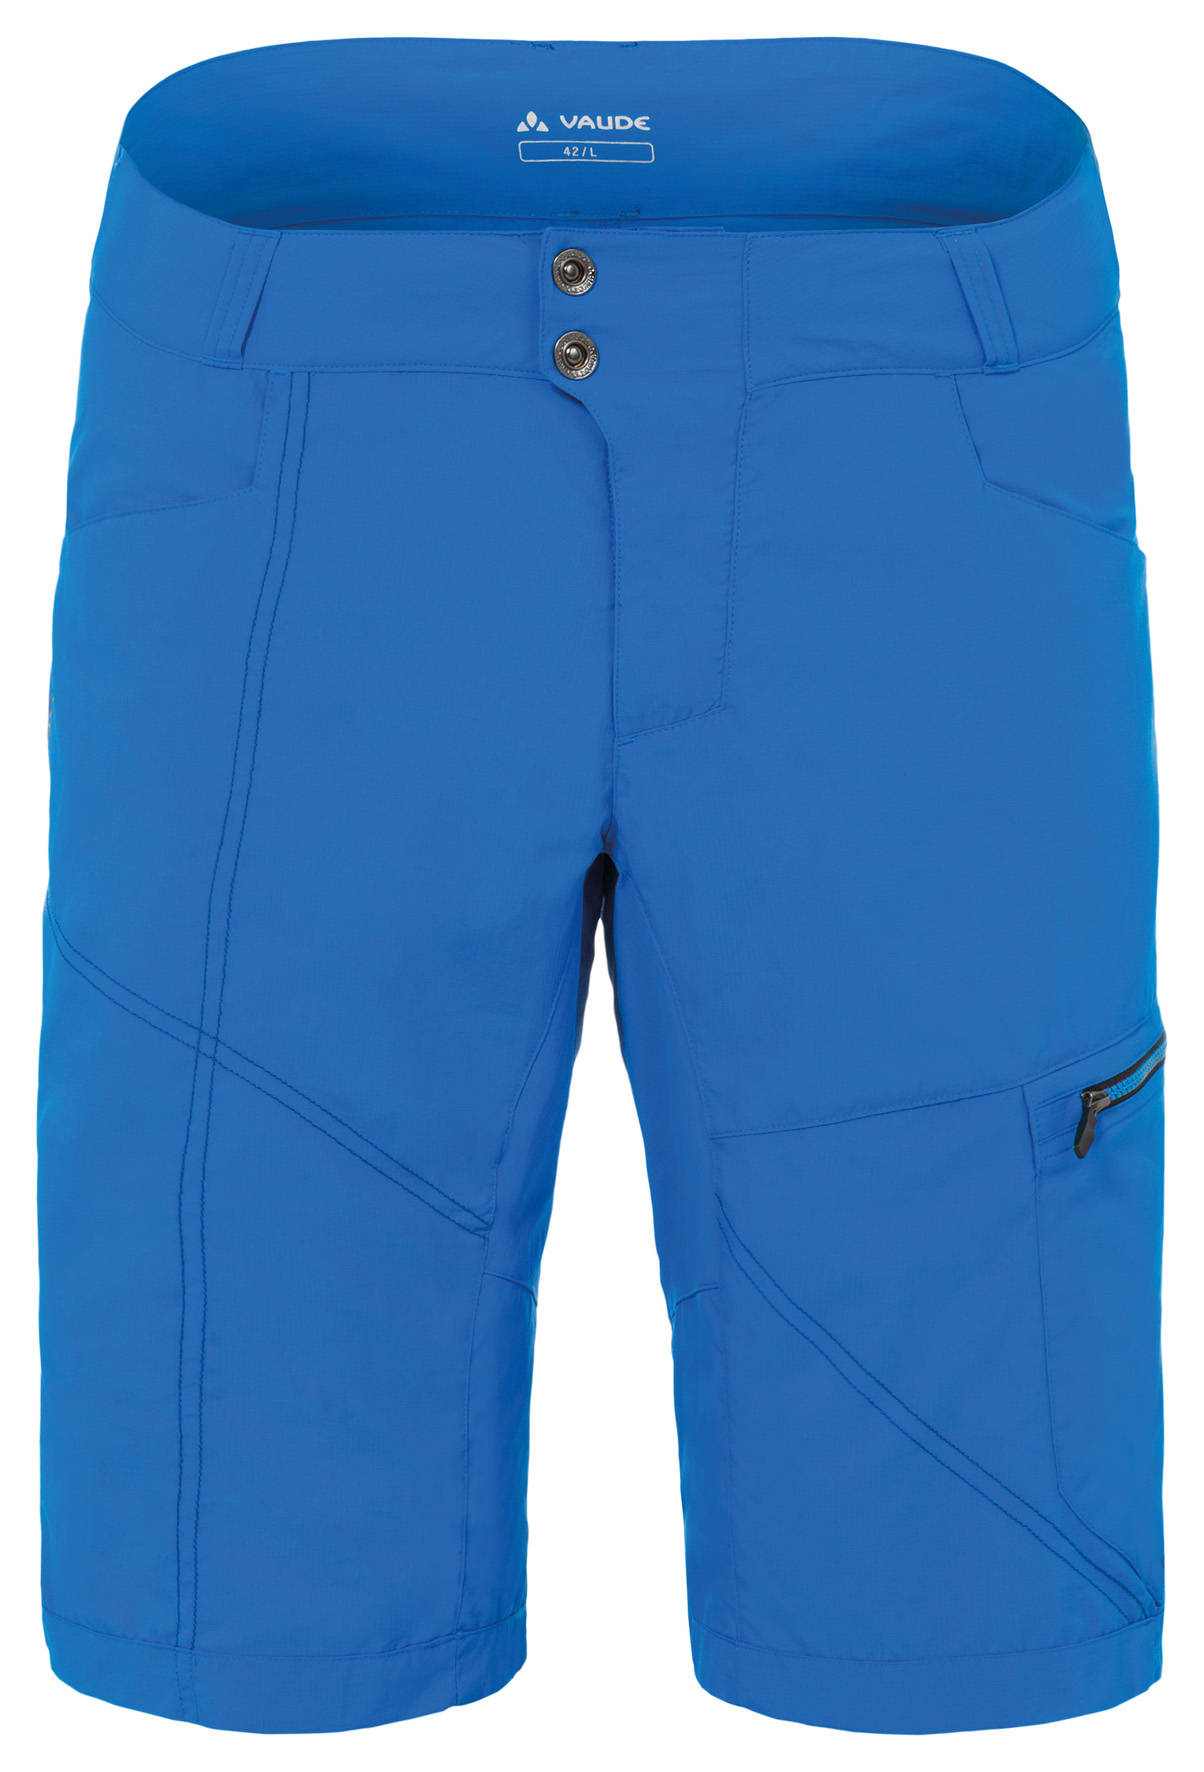 VAUDE Men´s Tamaro Shorts hydro blue Größe S - schneider-sports